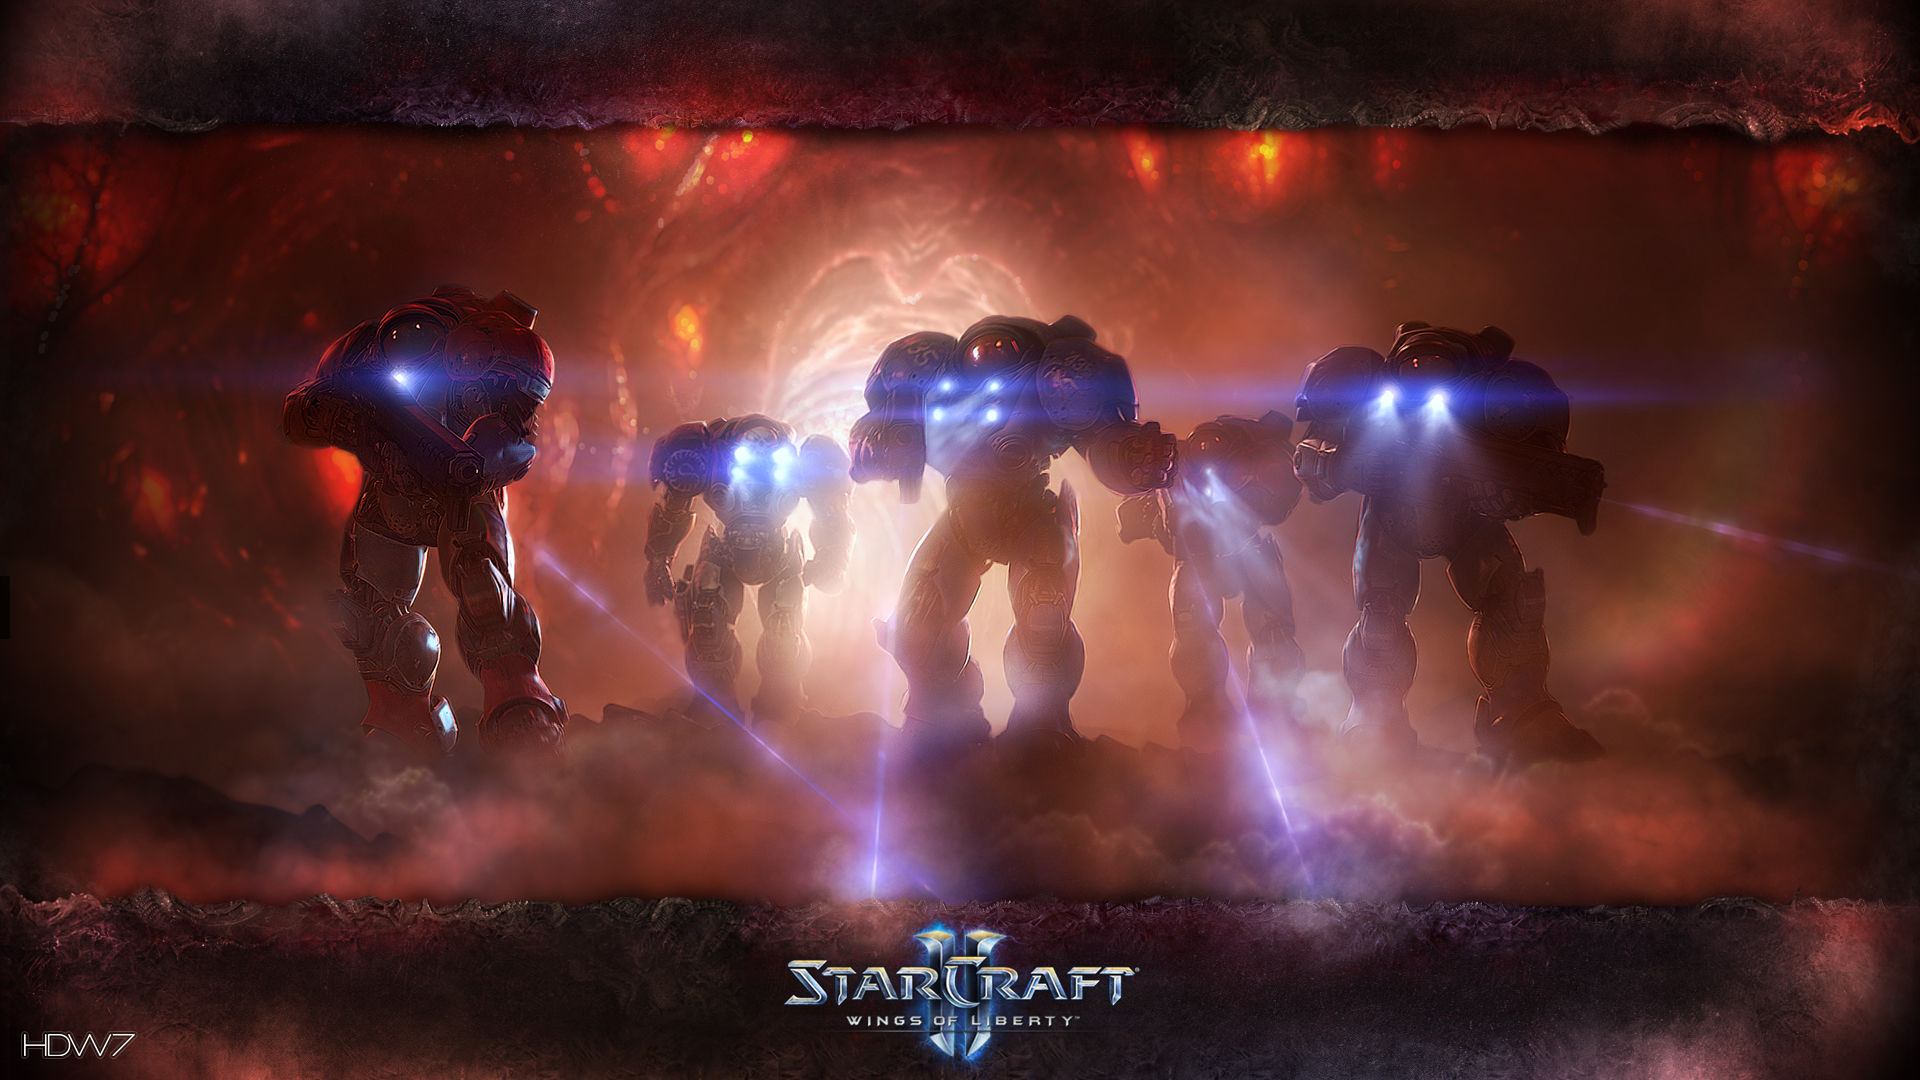 starcraft 2 marine expedition widescreen hd wallpaper | hd wallpaper